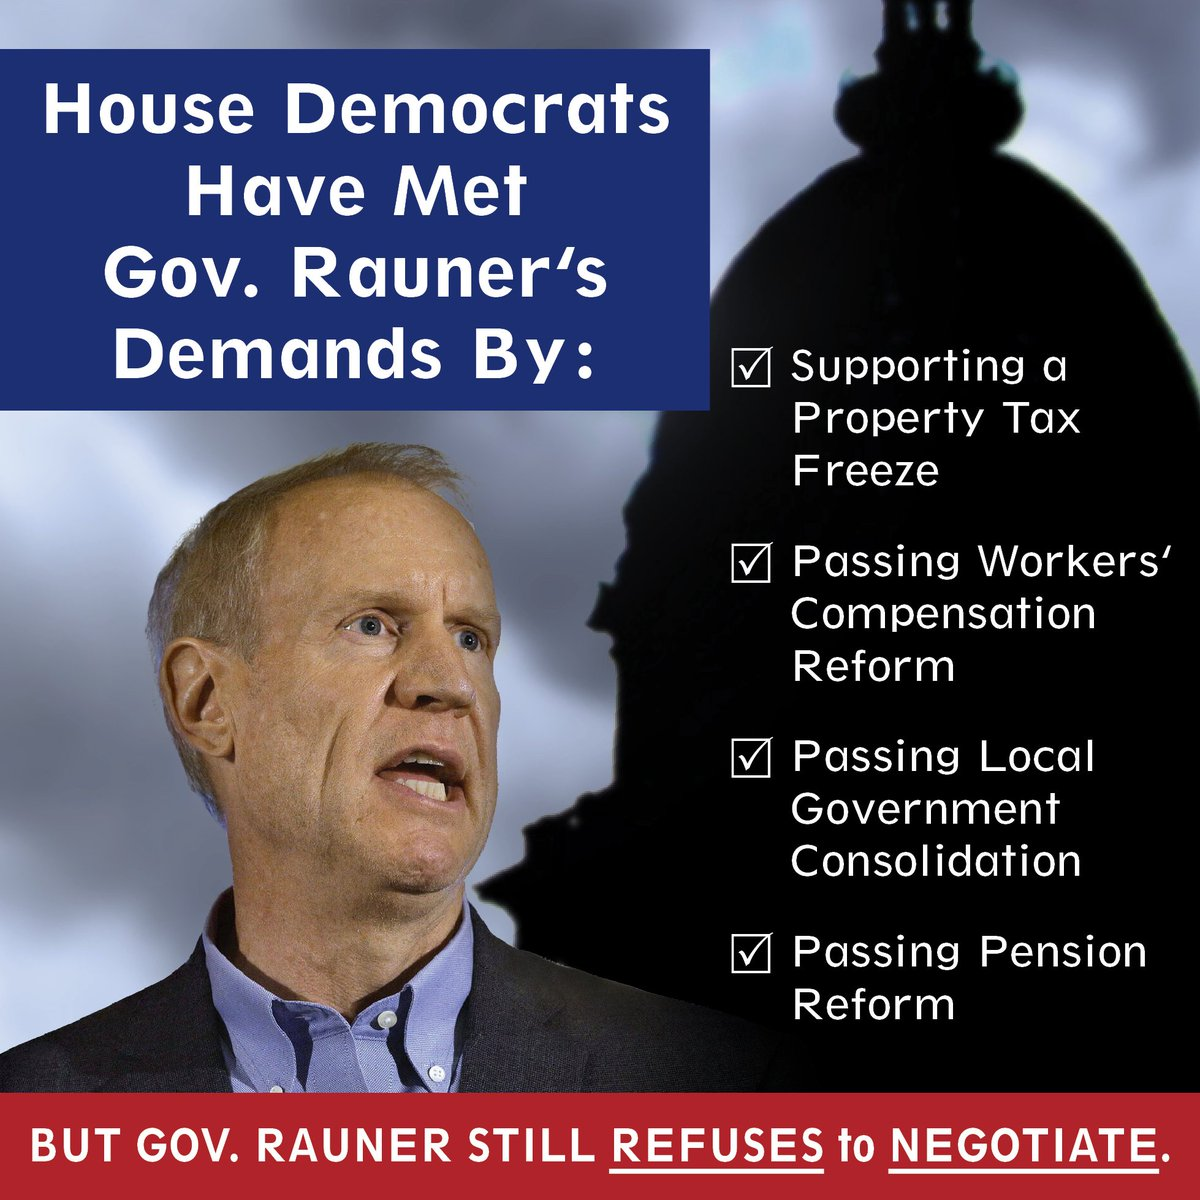 test Twitter Media - House Democrats have met @GovRauner's special session demands, but he still REFUSES to NEGOTIATE. #DoYourJob #twill https://t.co/kilSRMUoan